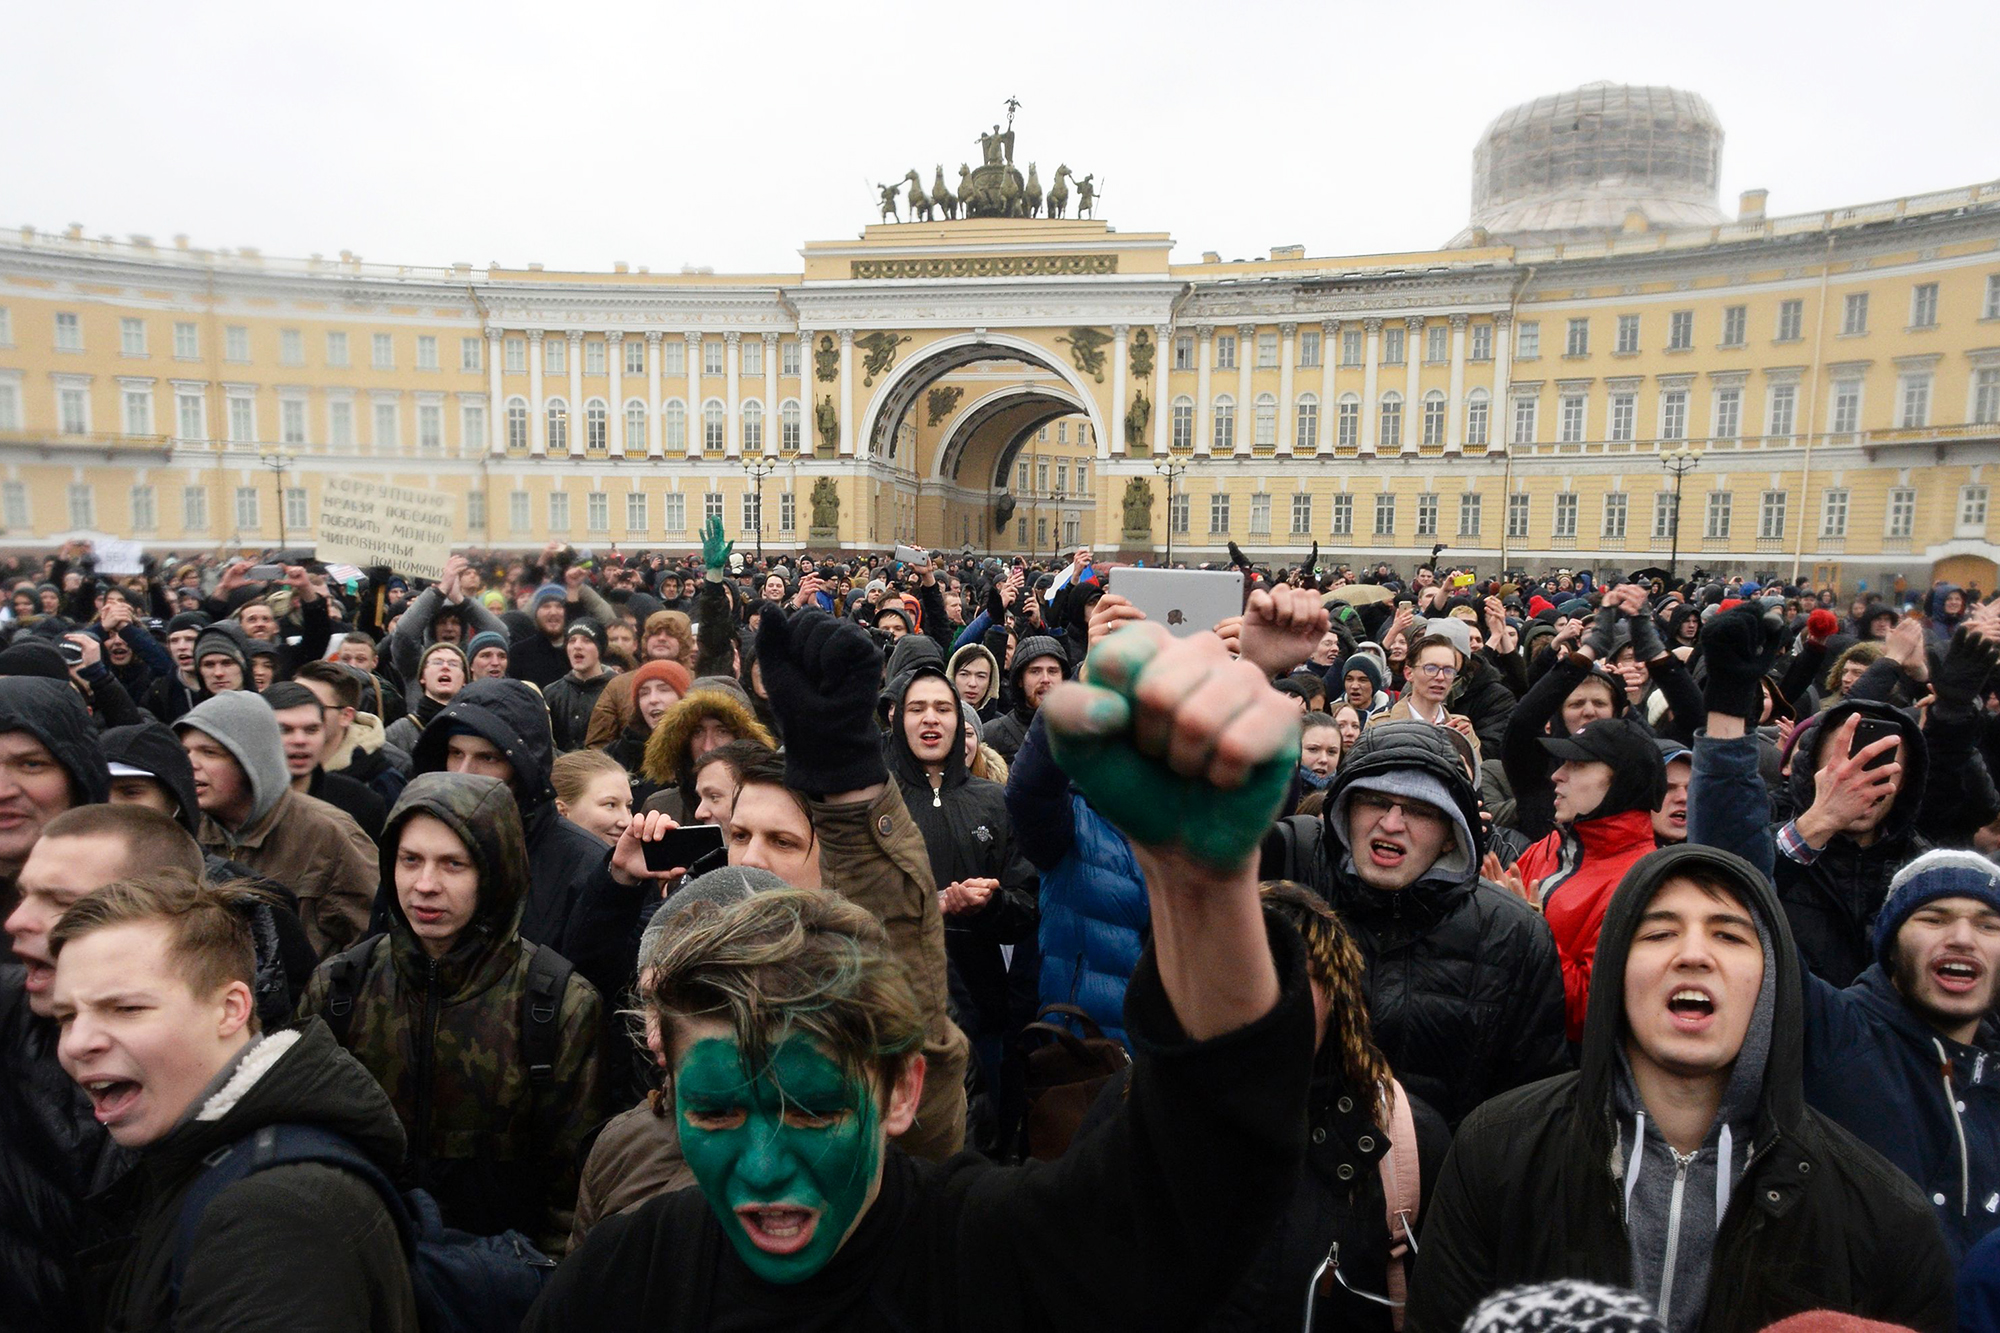 Opposition supporters participate in an anti-corruption rally in Saint Petersburg, Russia, on March 26, 2017.